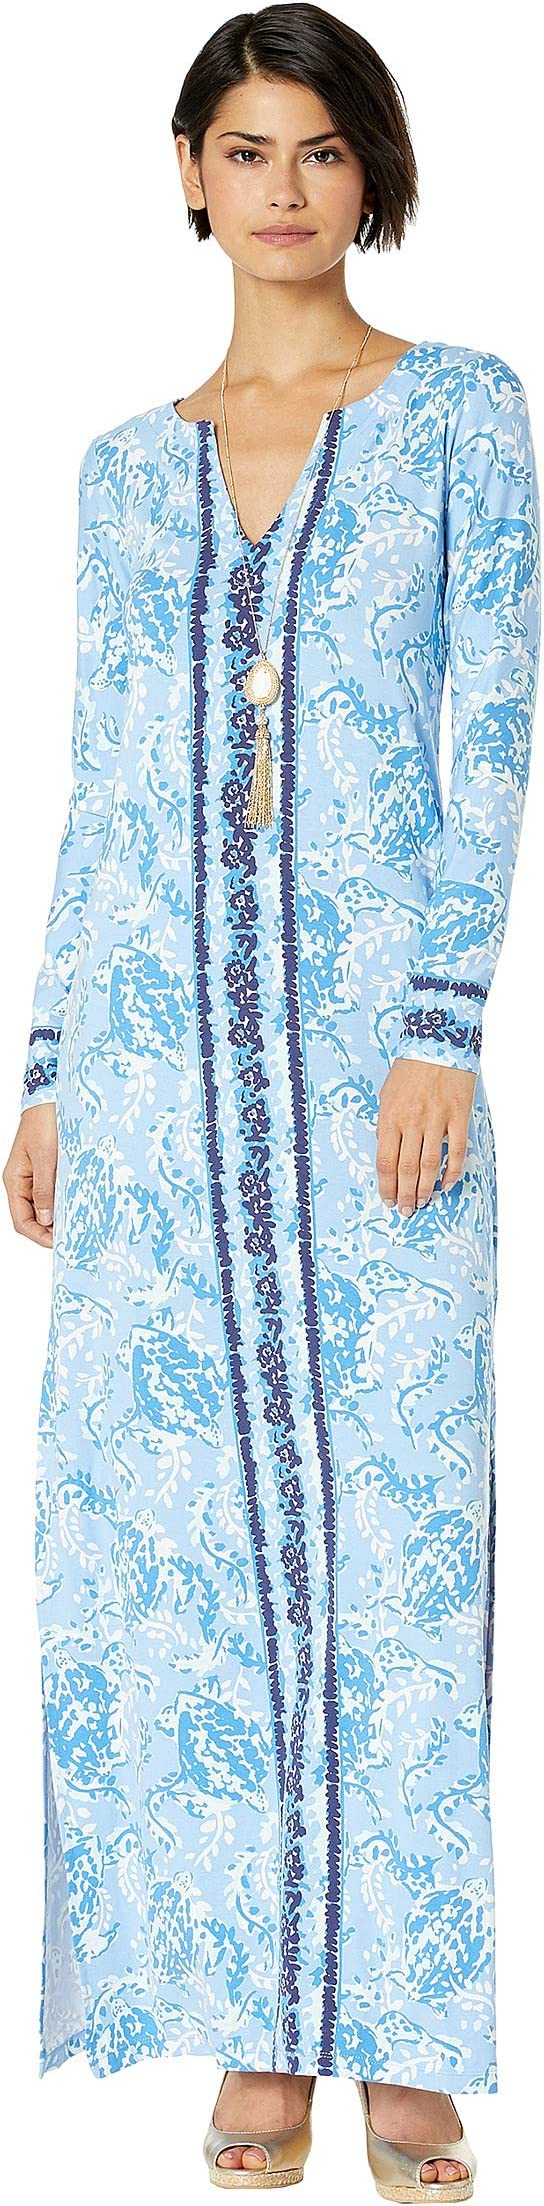 05a0bcbd017818 Wallis Petite Blue Floral Maxi Dress